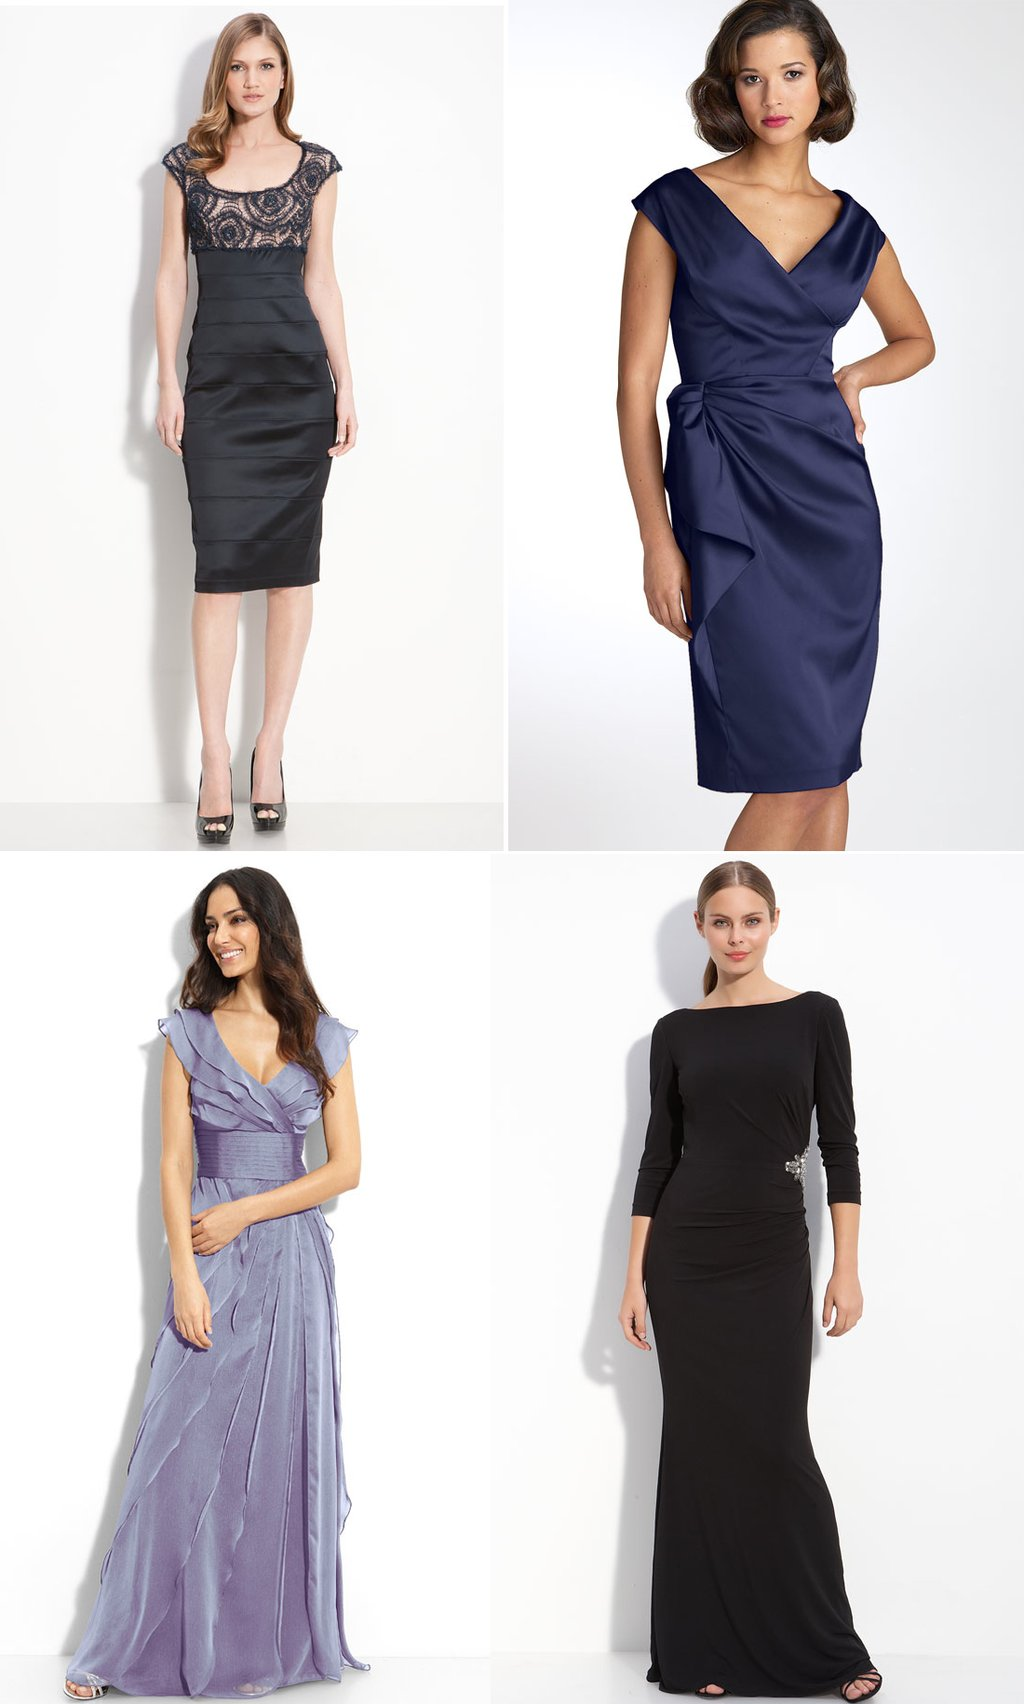 Chic-formal-dresses-for-mothers-of-brides-grooms-nordstrom.full